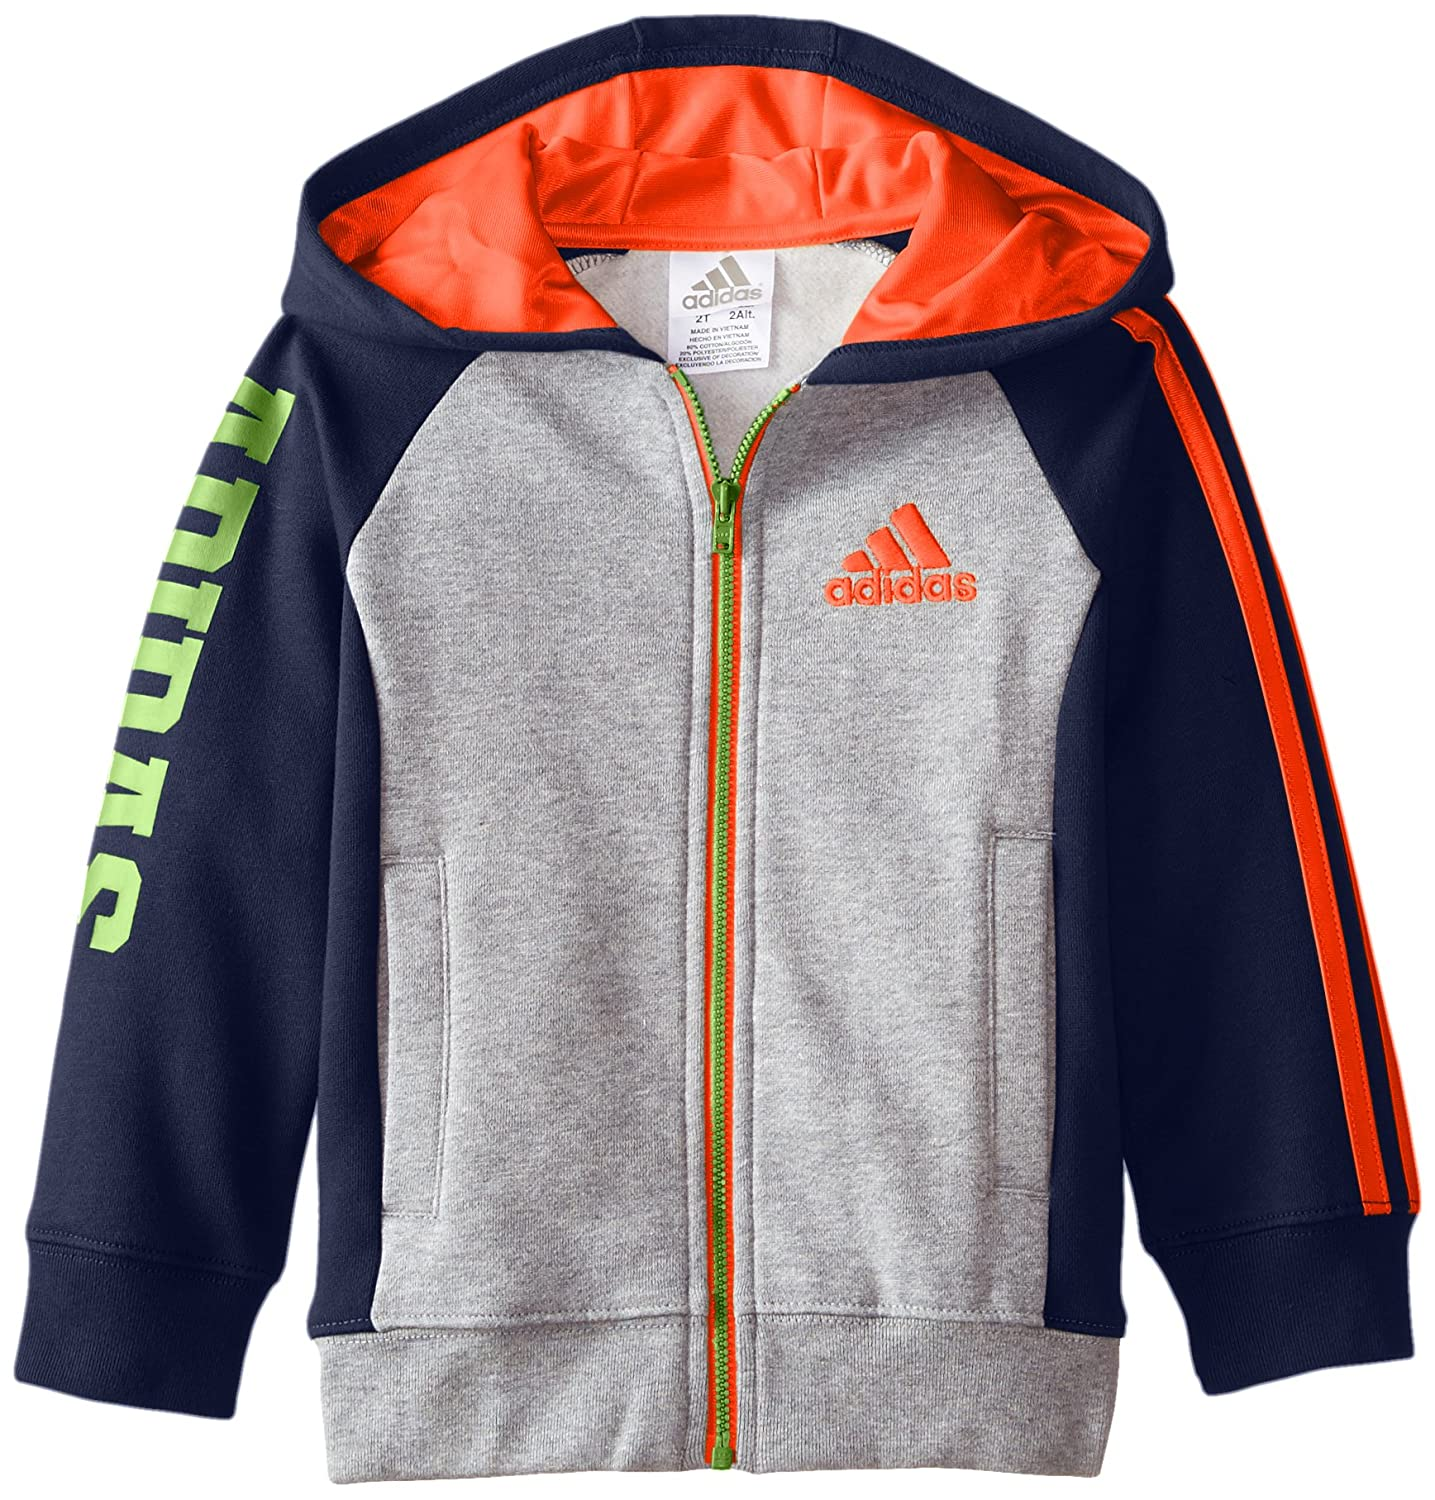 adidas Boys' Activewear Zip Up Hoodie 2T 1215807